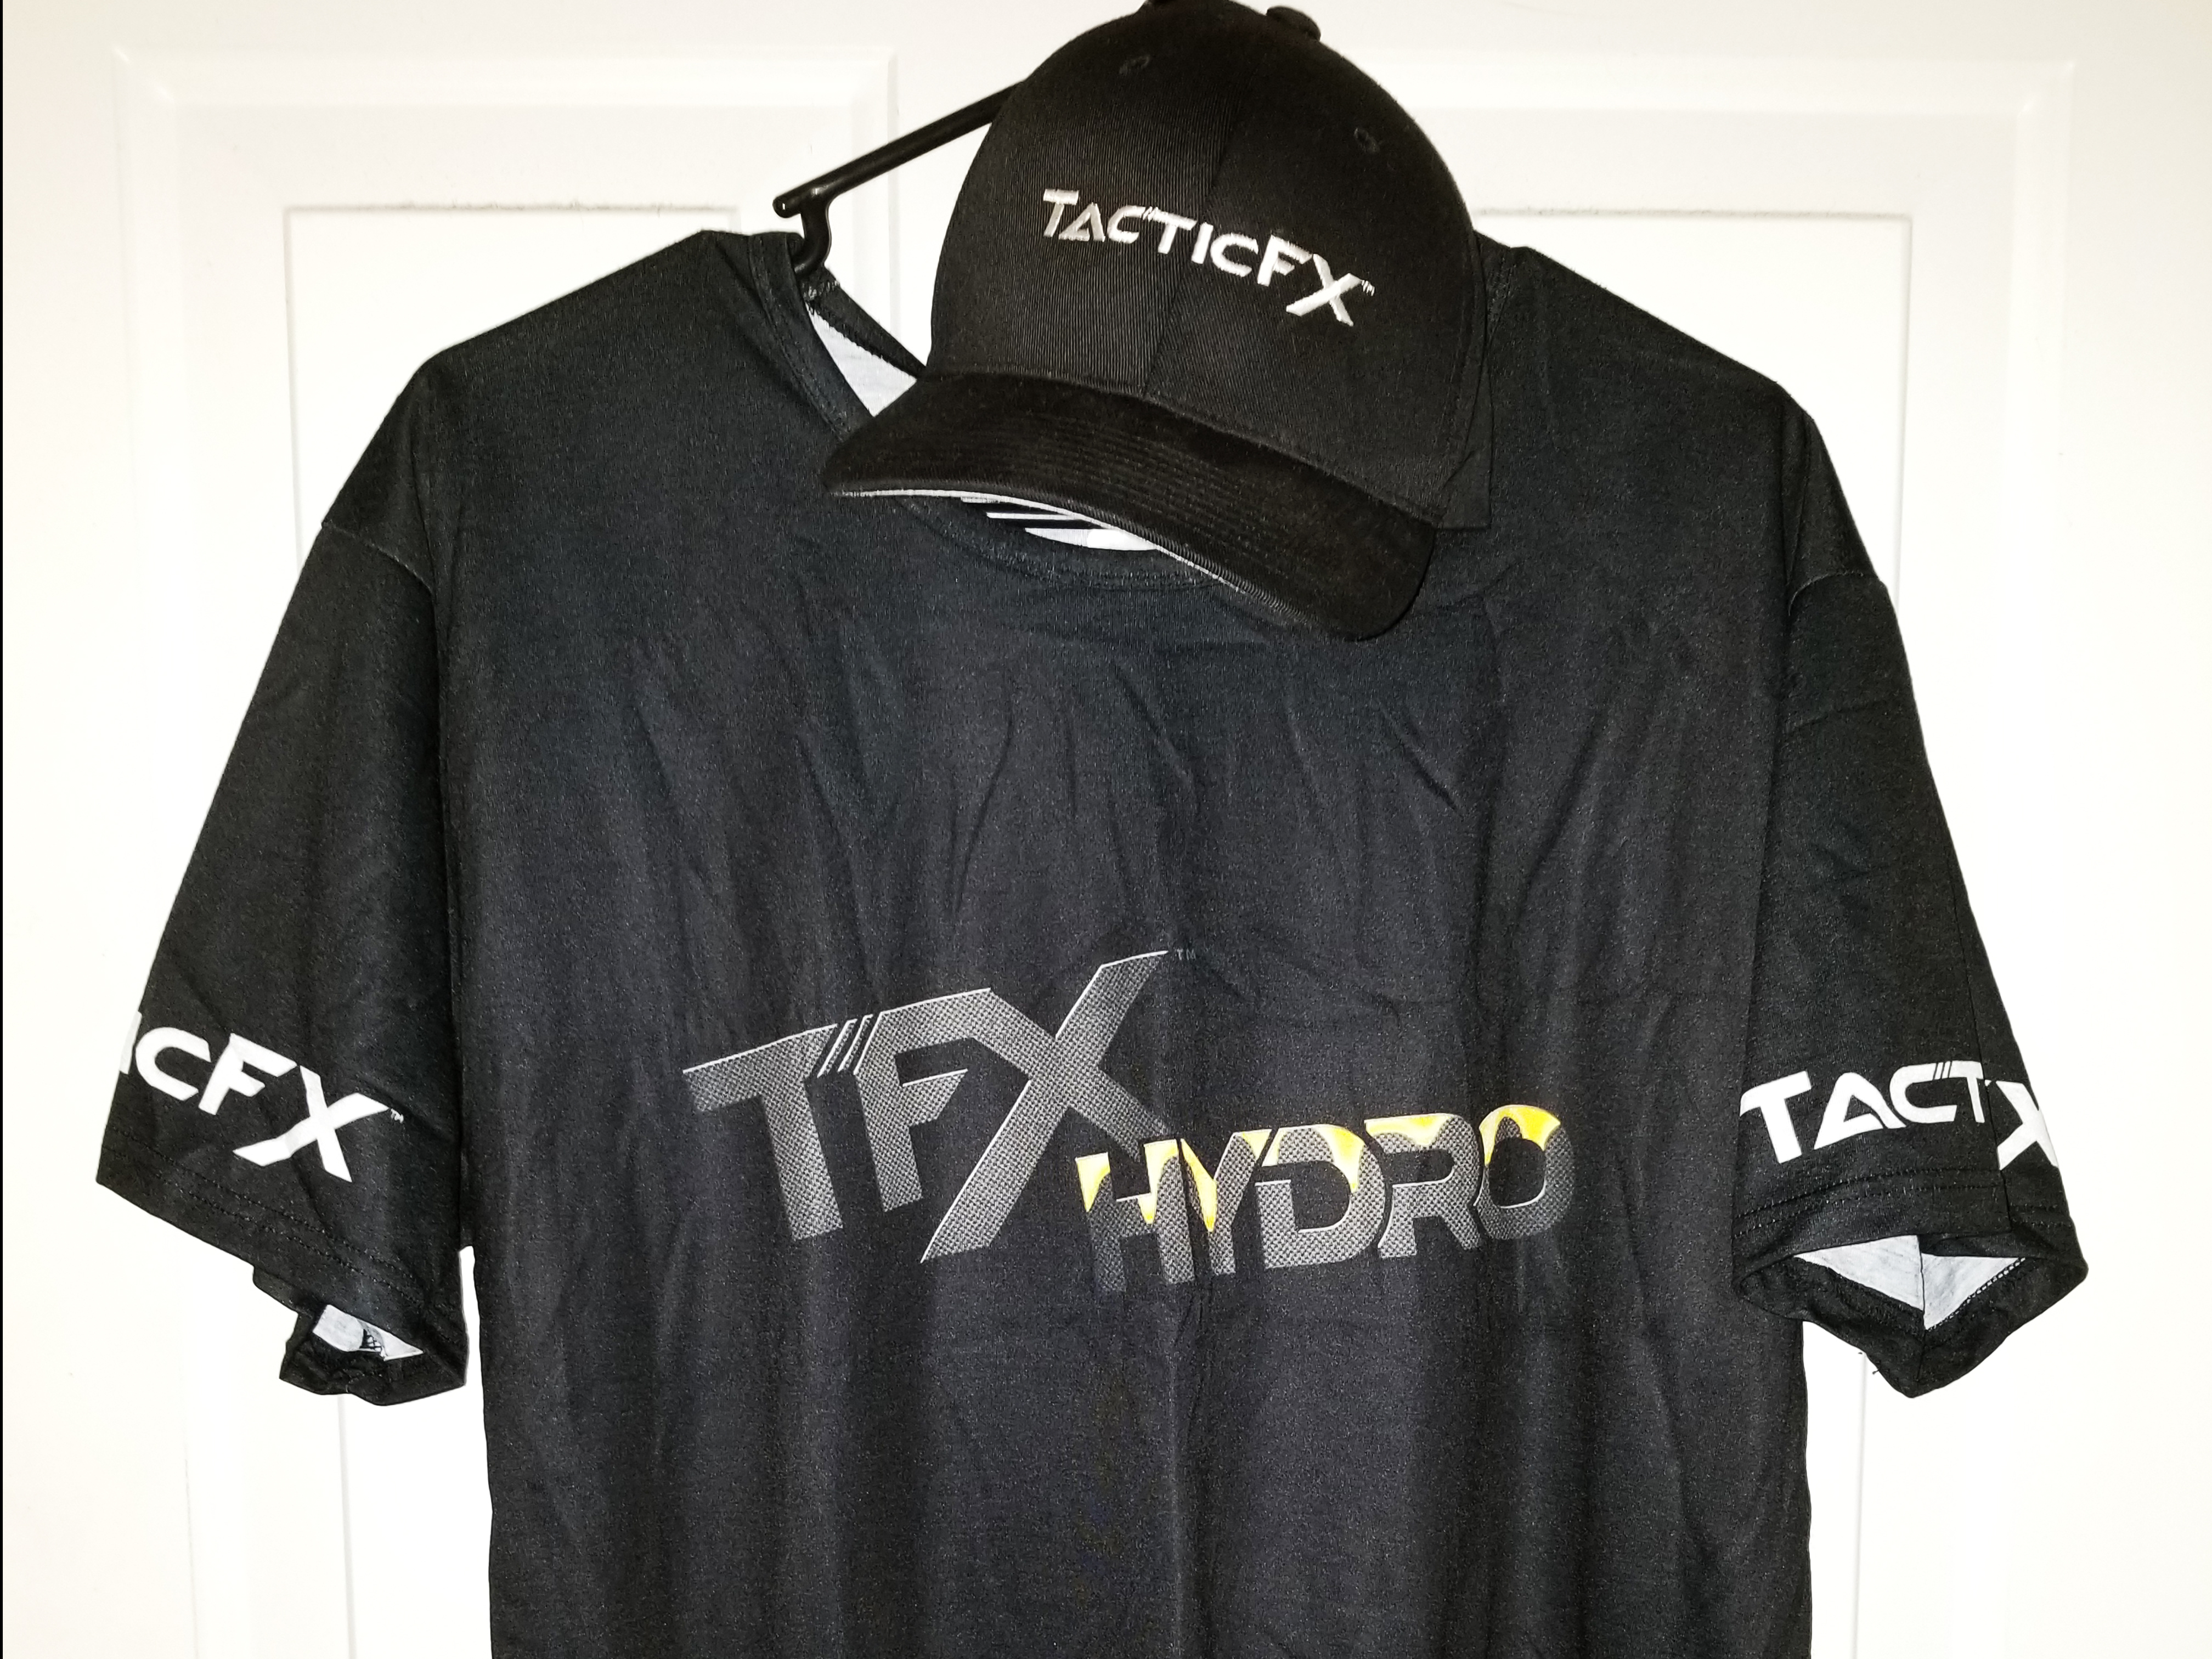 TacticFX Branded clothing hanging on a wall.